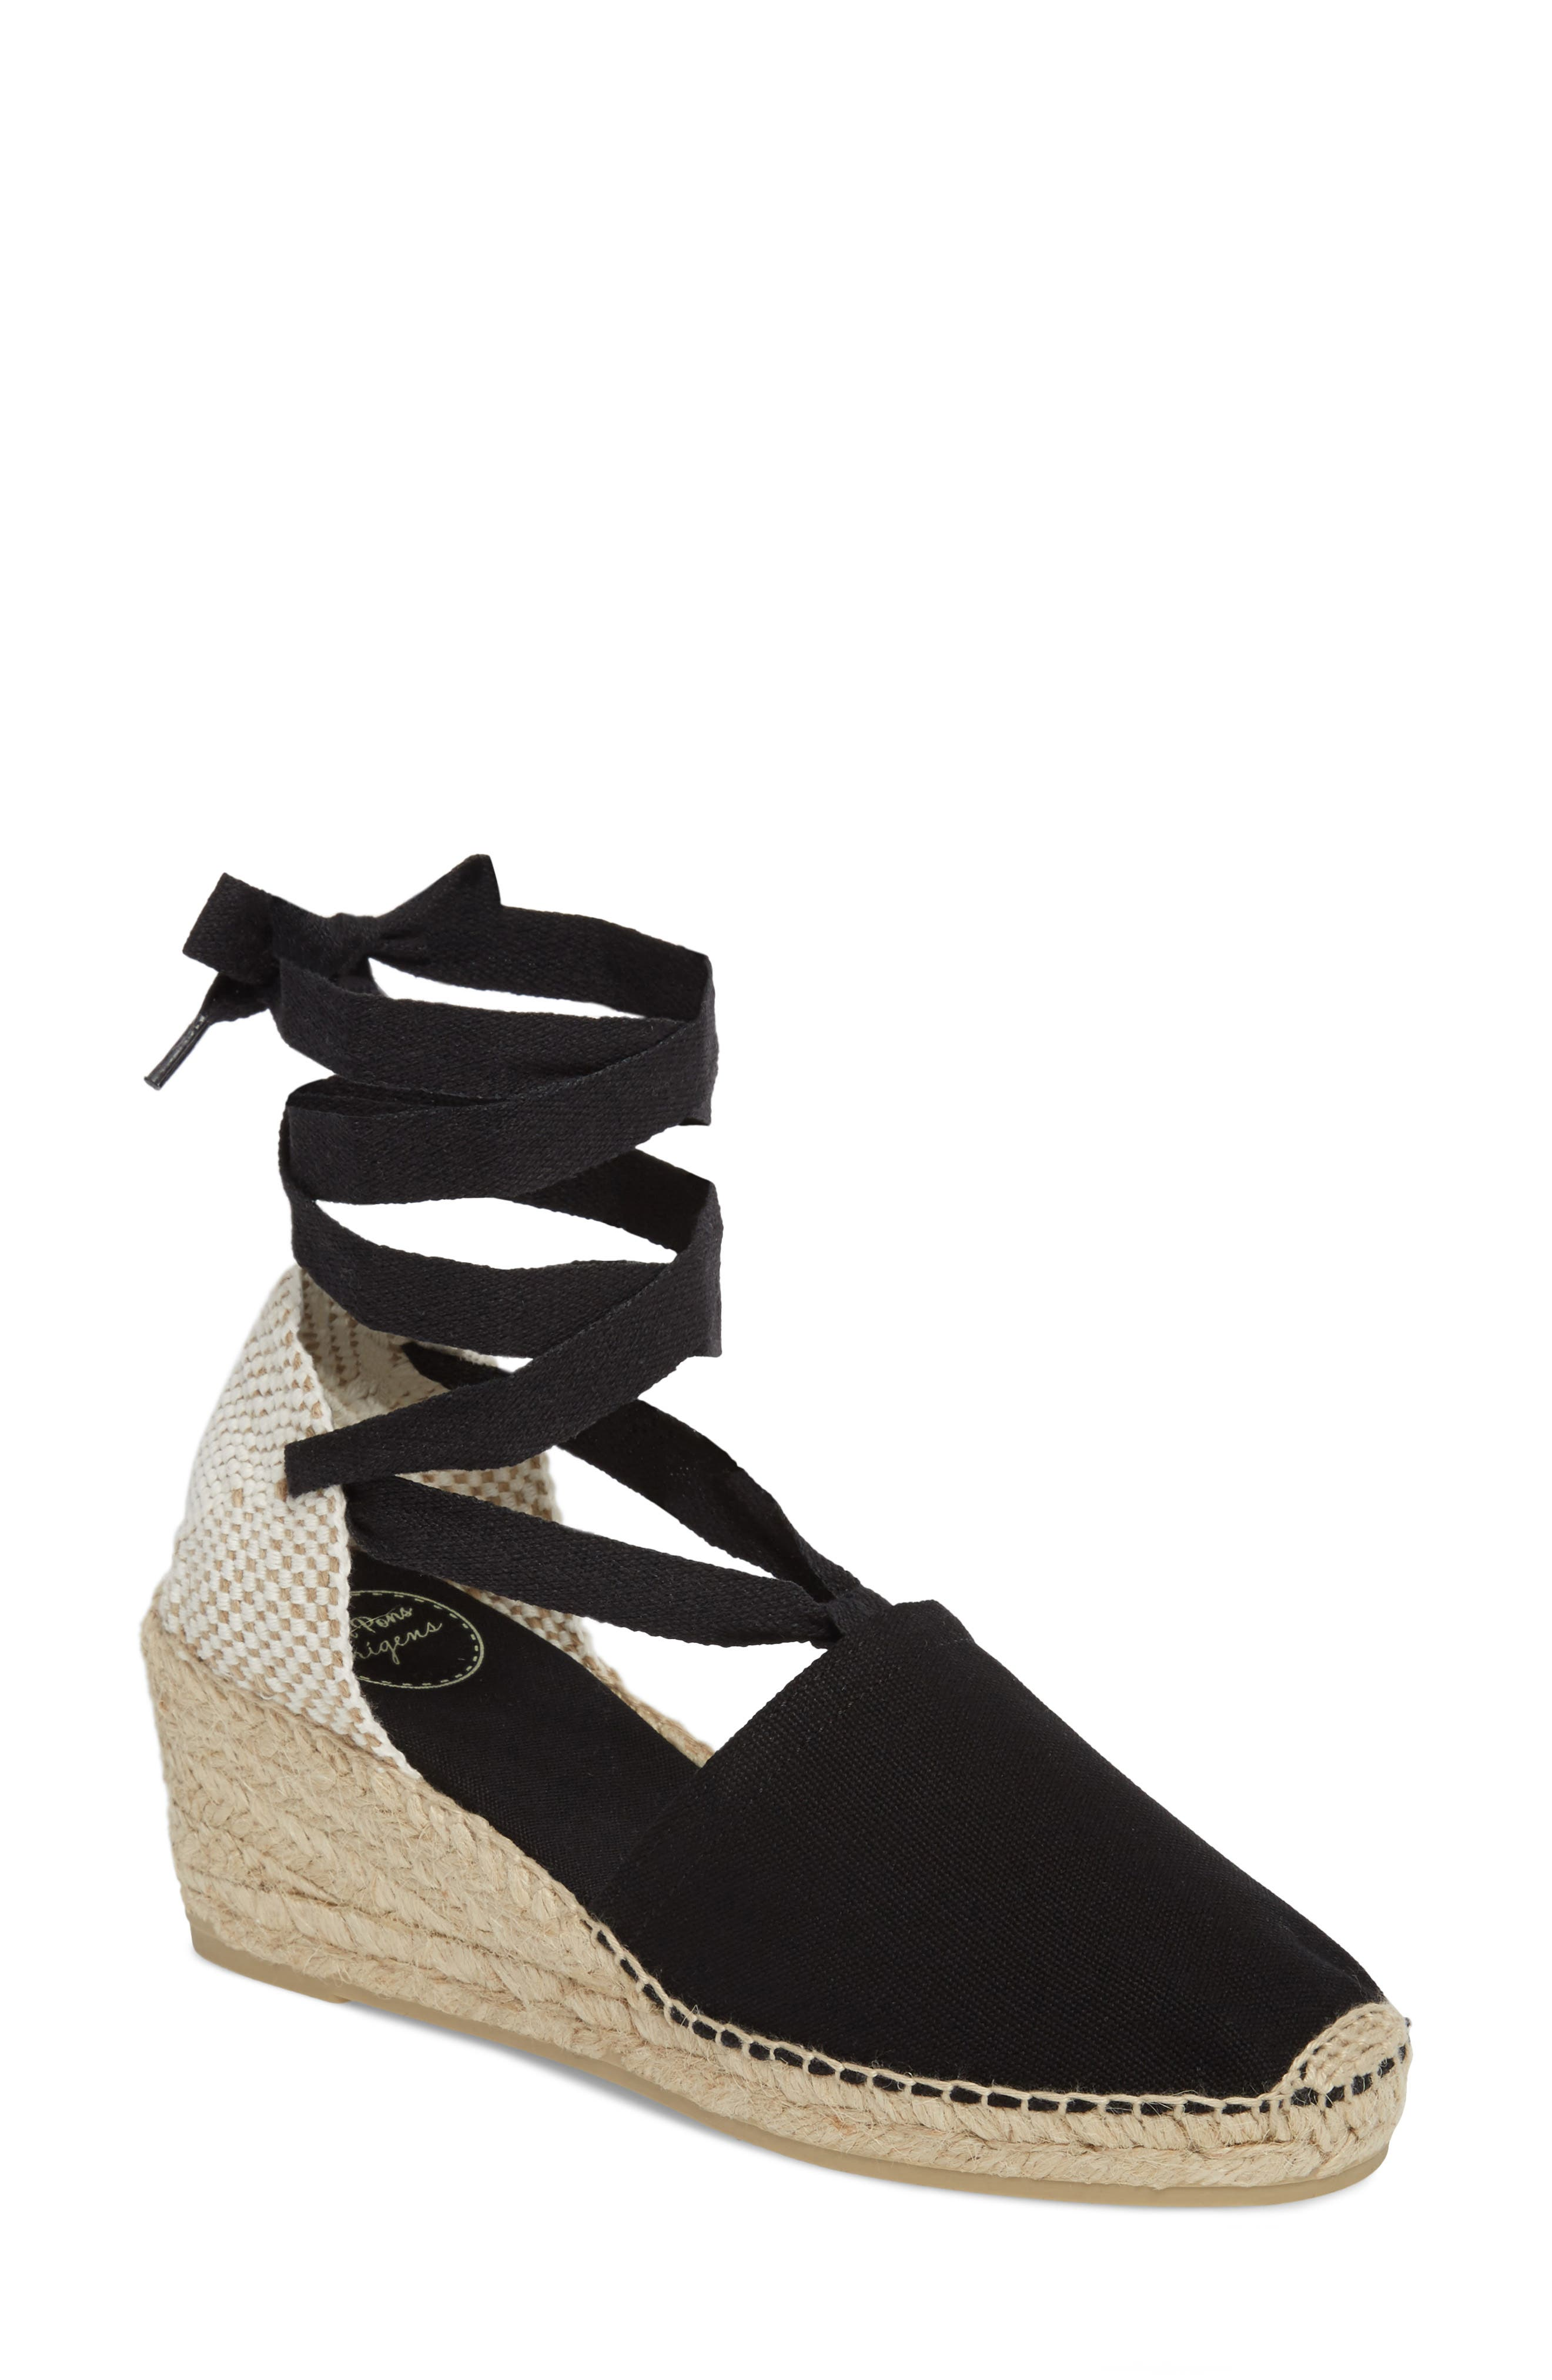 TONI PONS, Valencia Wraparound Espadrille Wedge, Main thumbnail 1, color, BLACK FABRIC